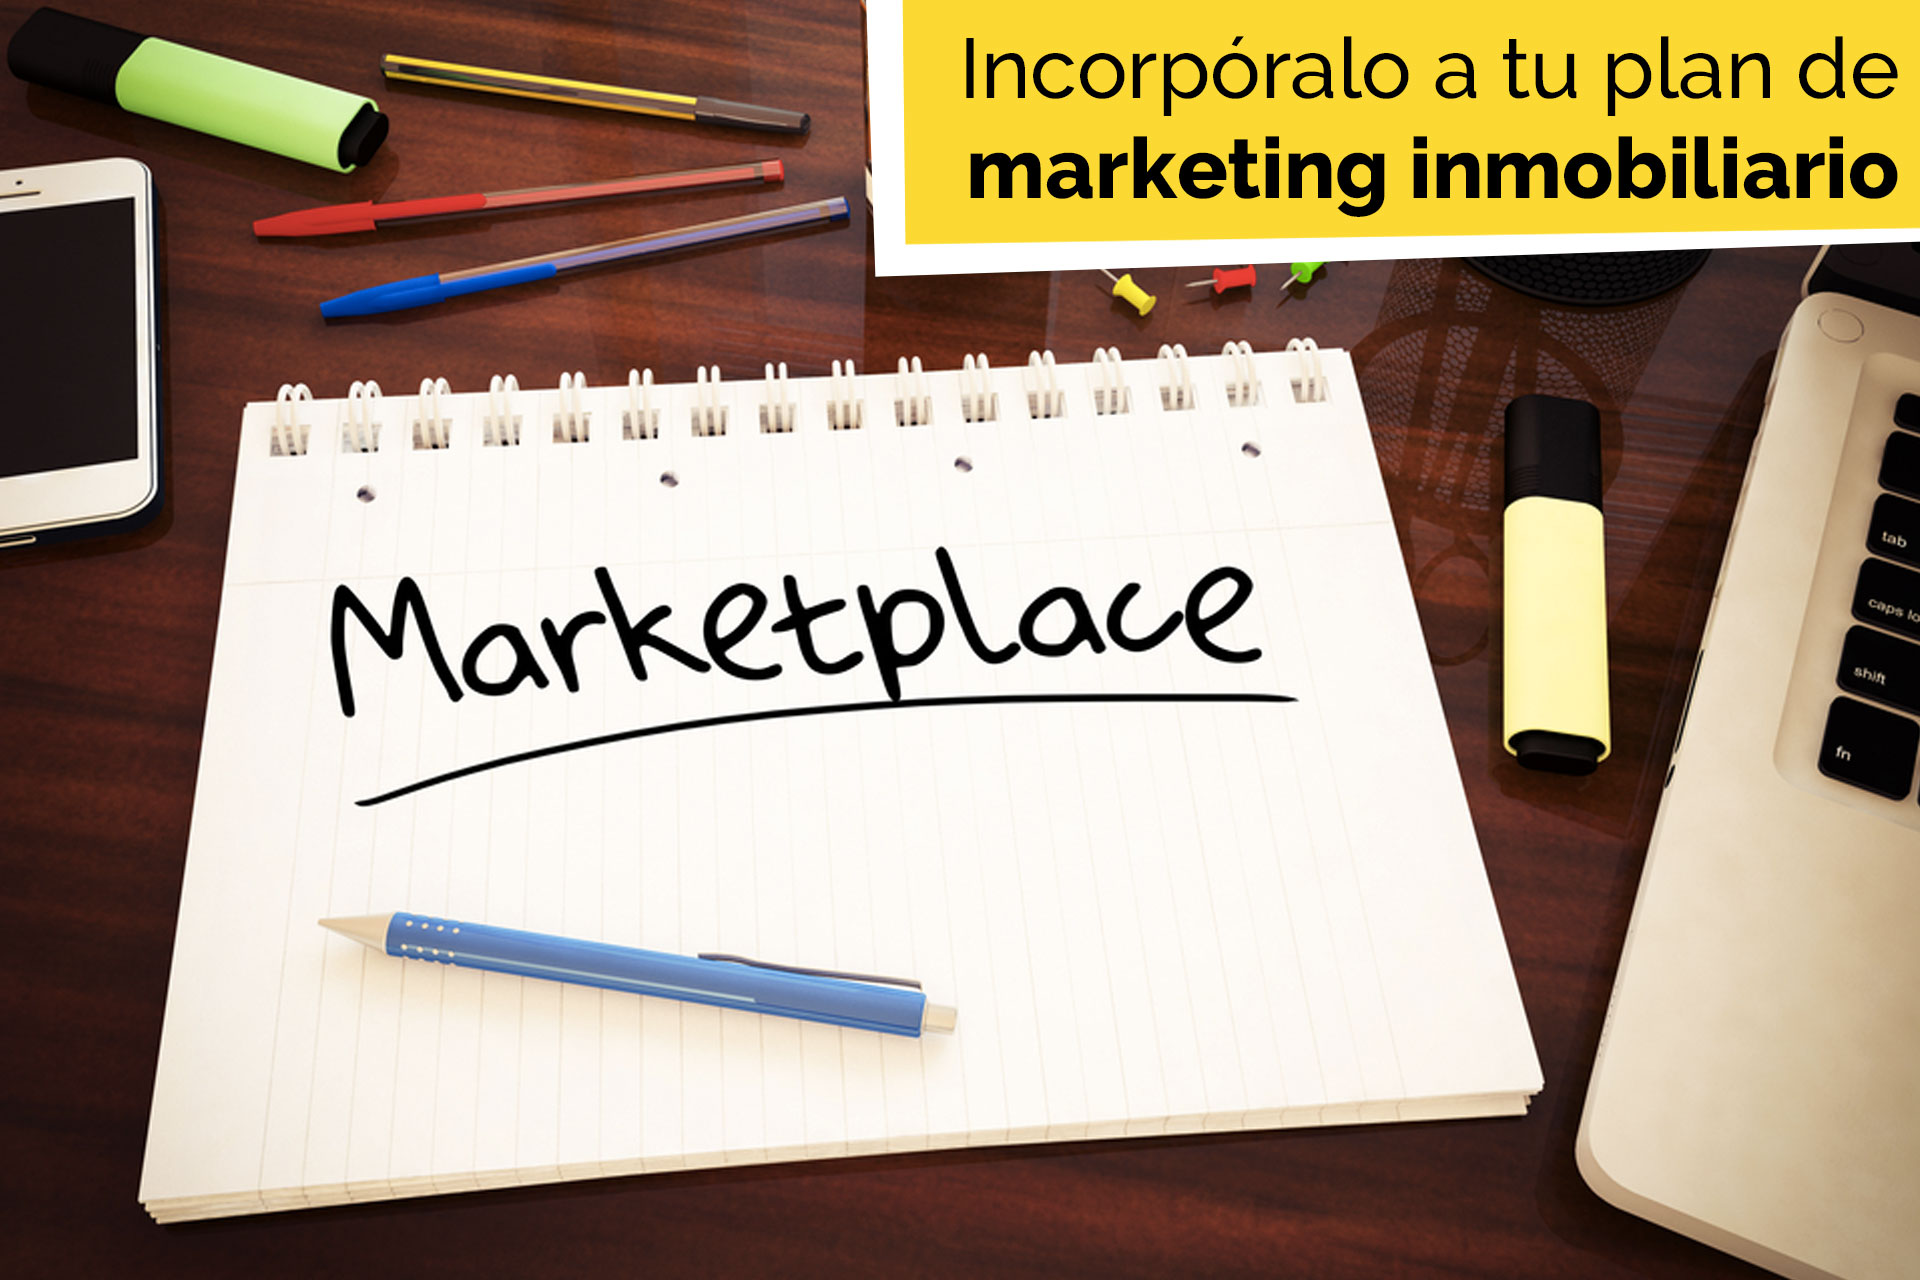 incorpora-marketplace-plan-de-marketing-inmobiliario.jpg